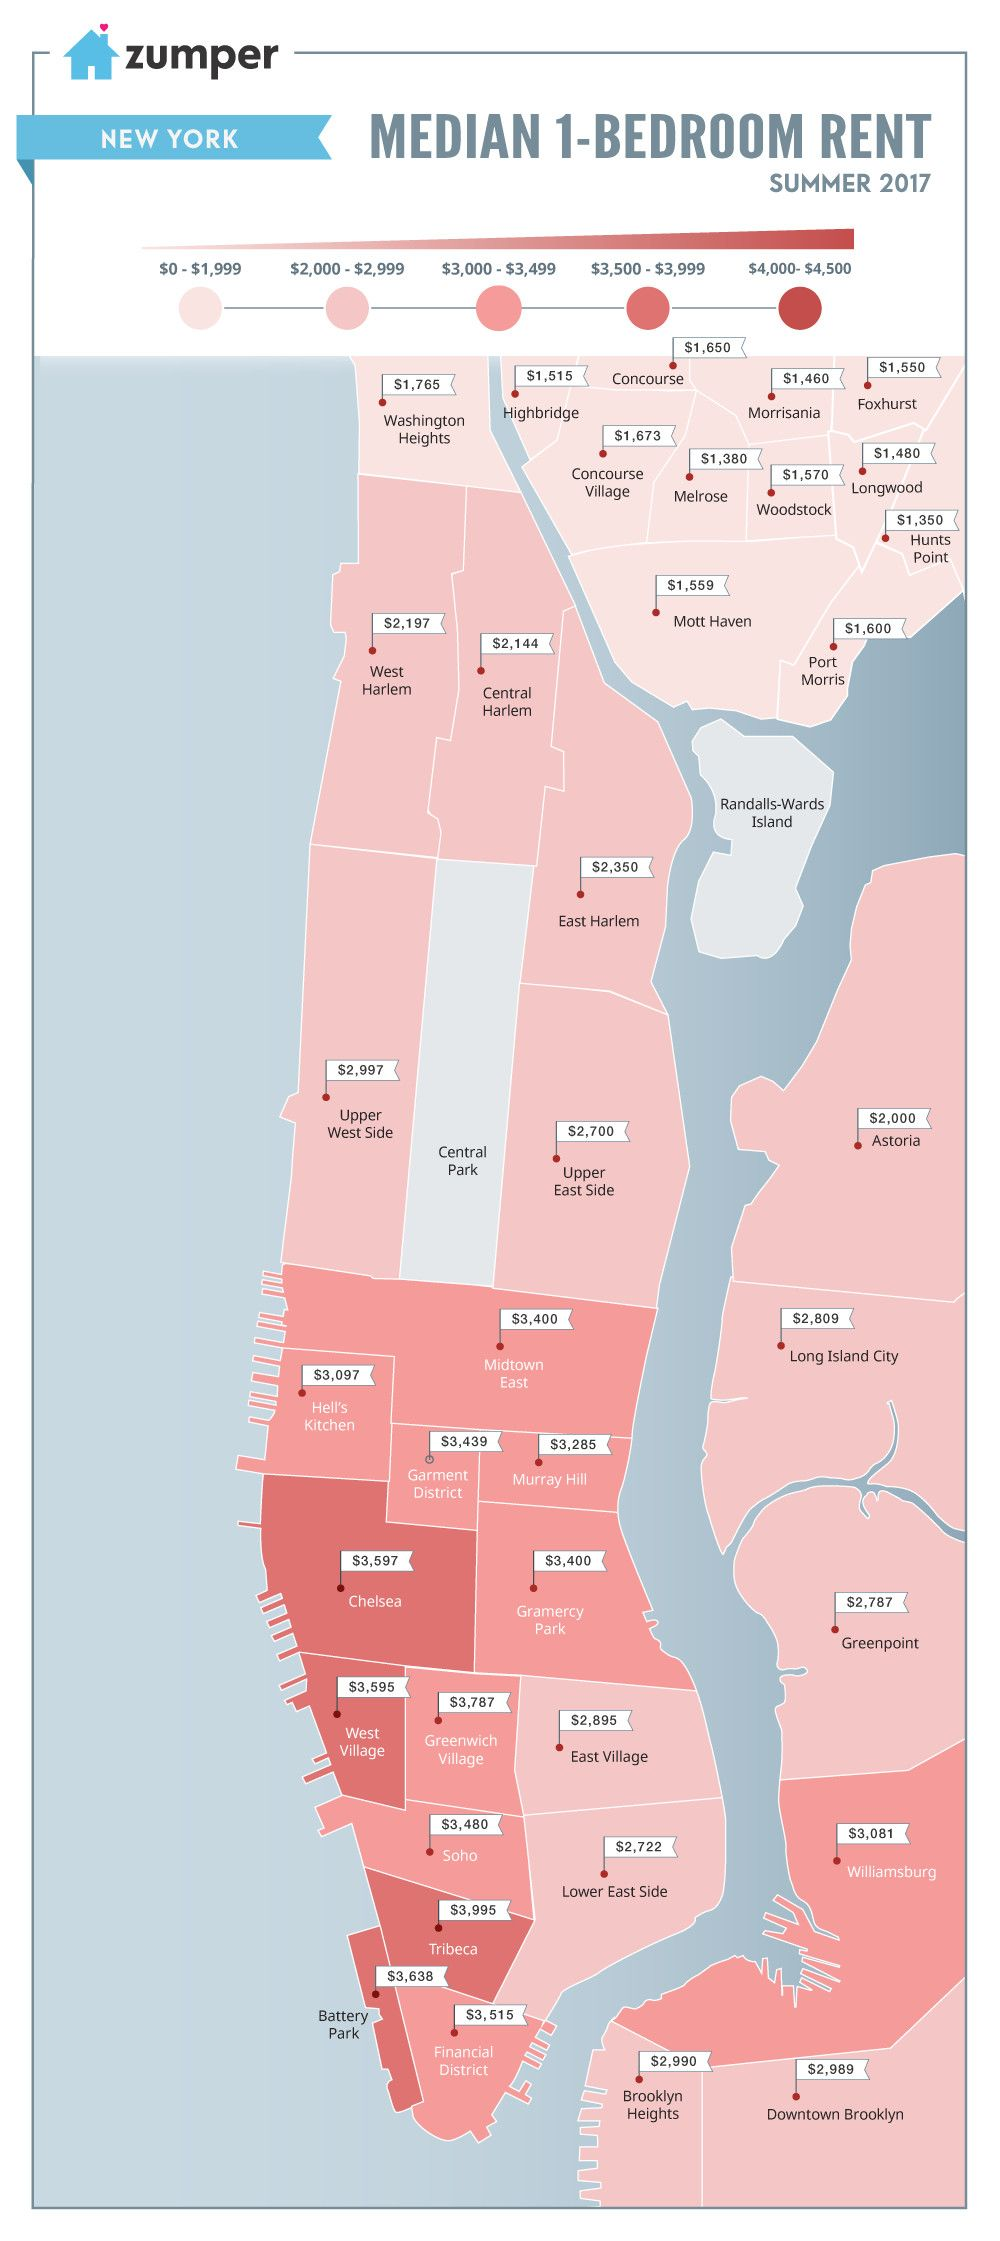 Comparing Manhattan And Brooklyn 1br Rents Across Different Neighborhoods New York Neighborhoods Rent In Nyc Nyc Neighborhoods